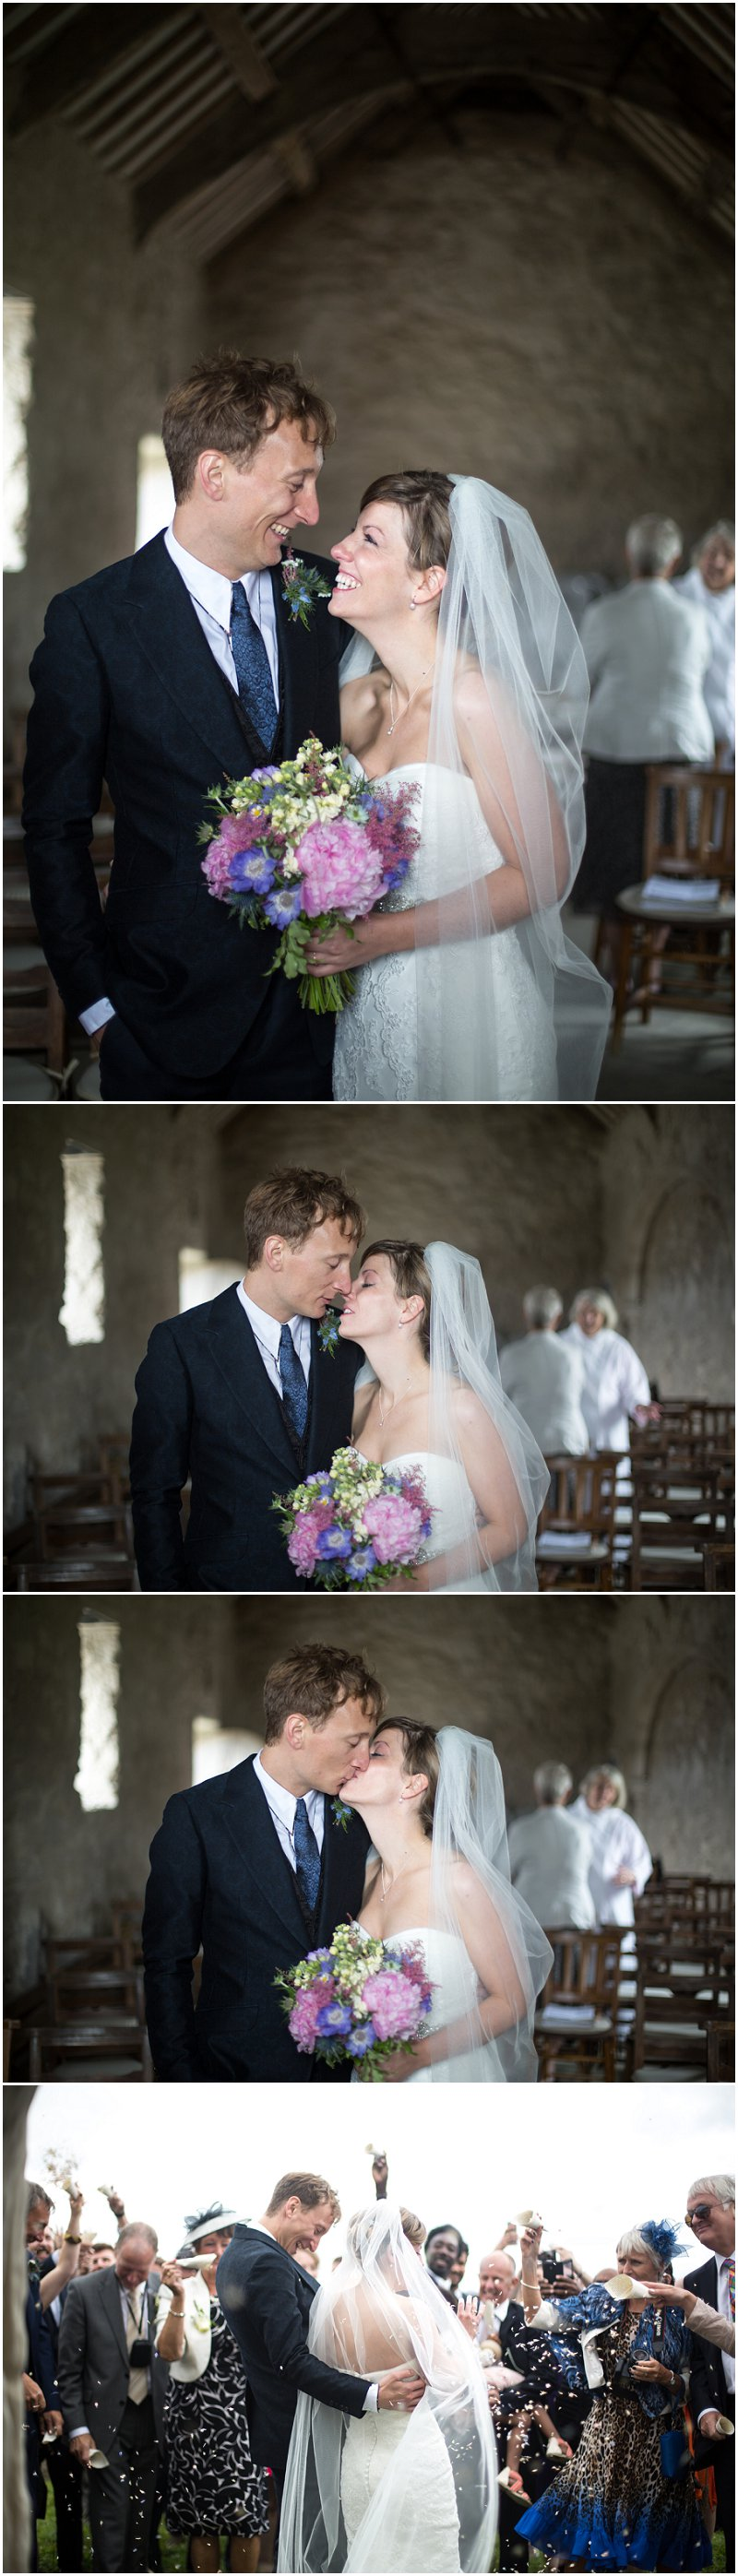 Beautiful Bride and Groom after ceremony at The Church on the Sea Anglesey Wedding Photographer